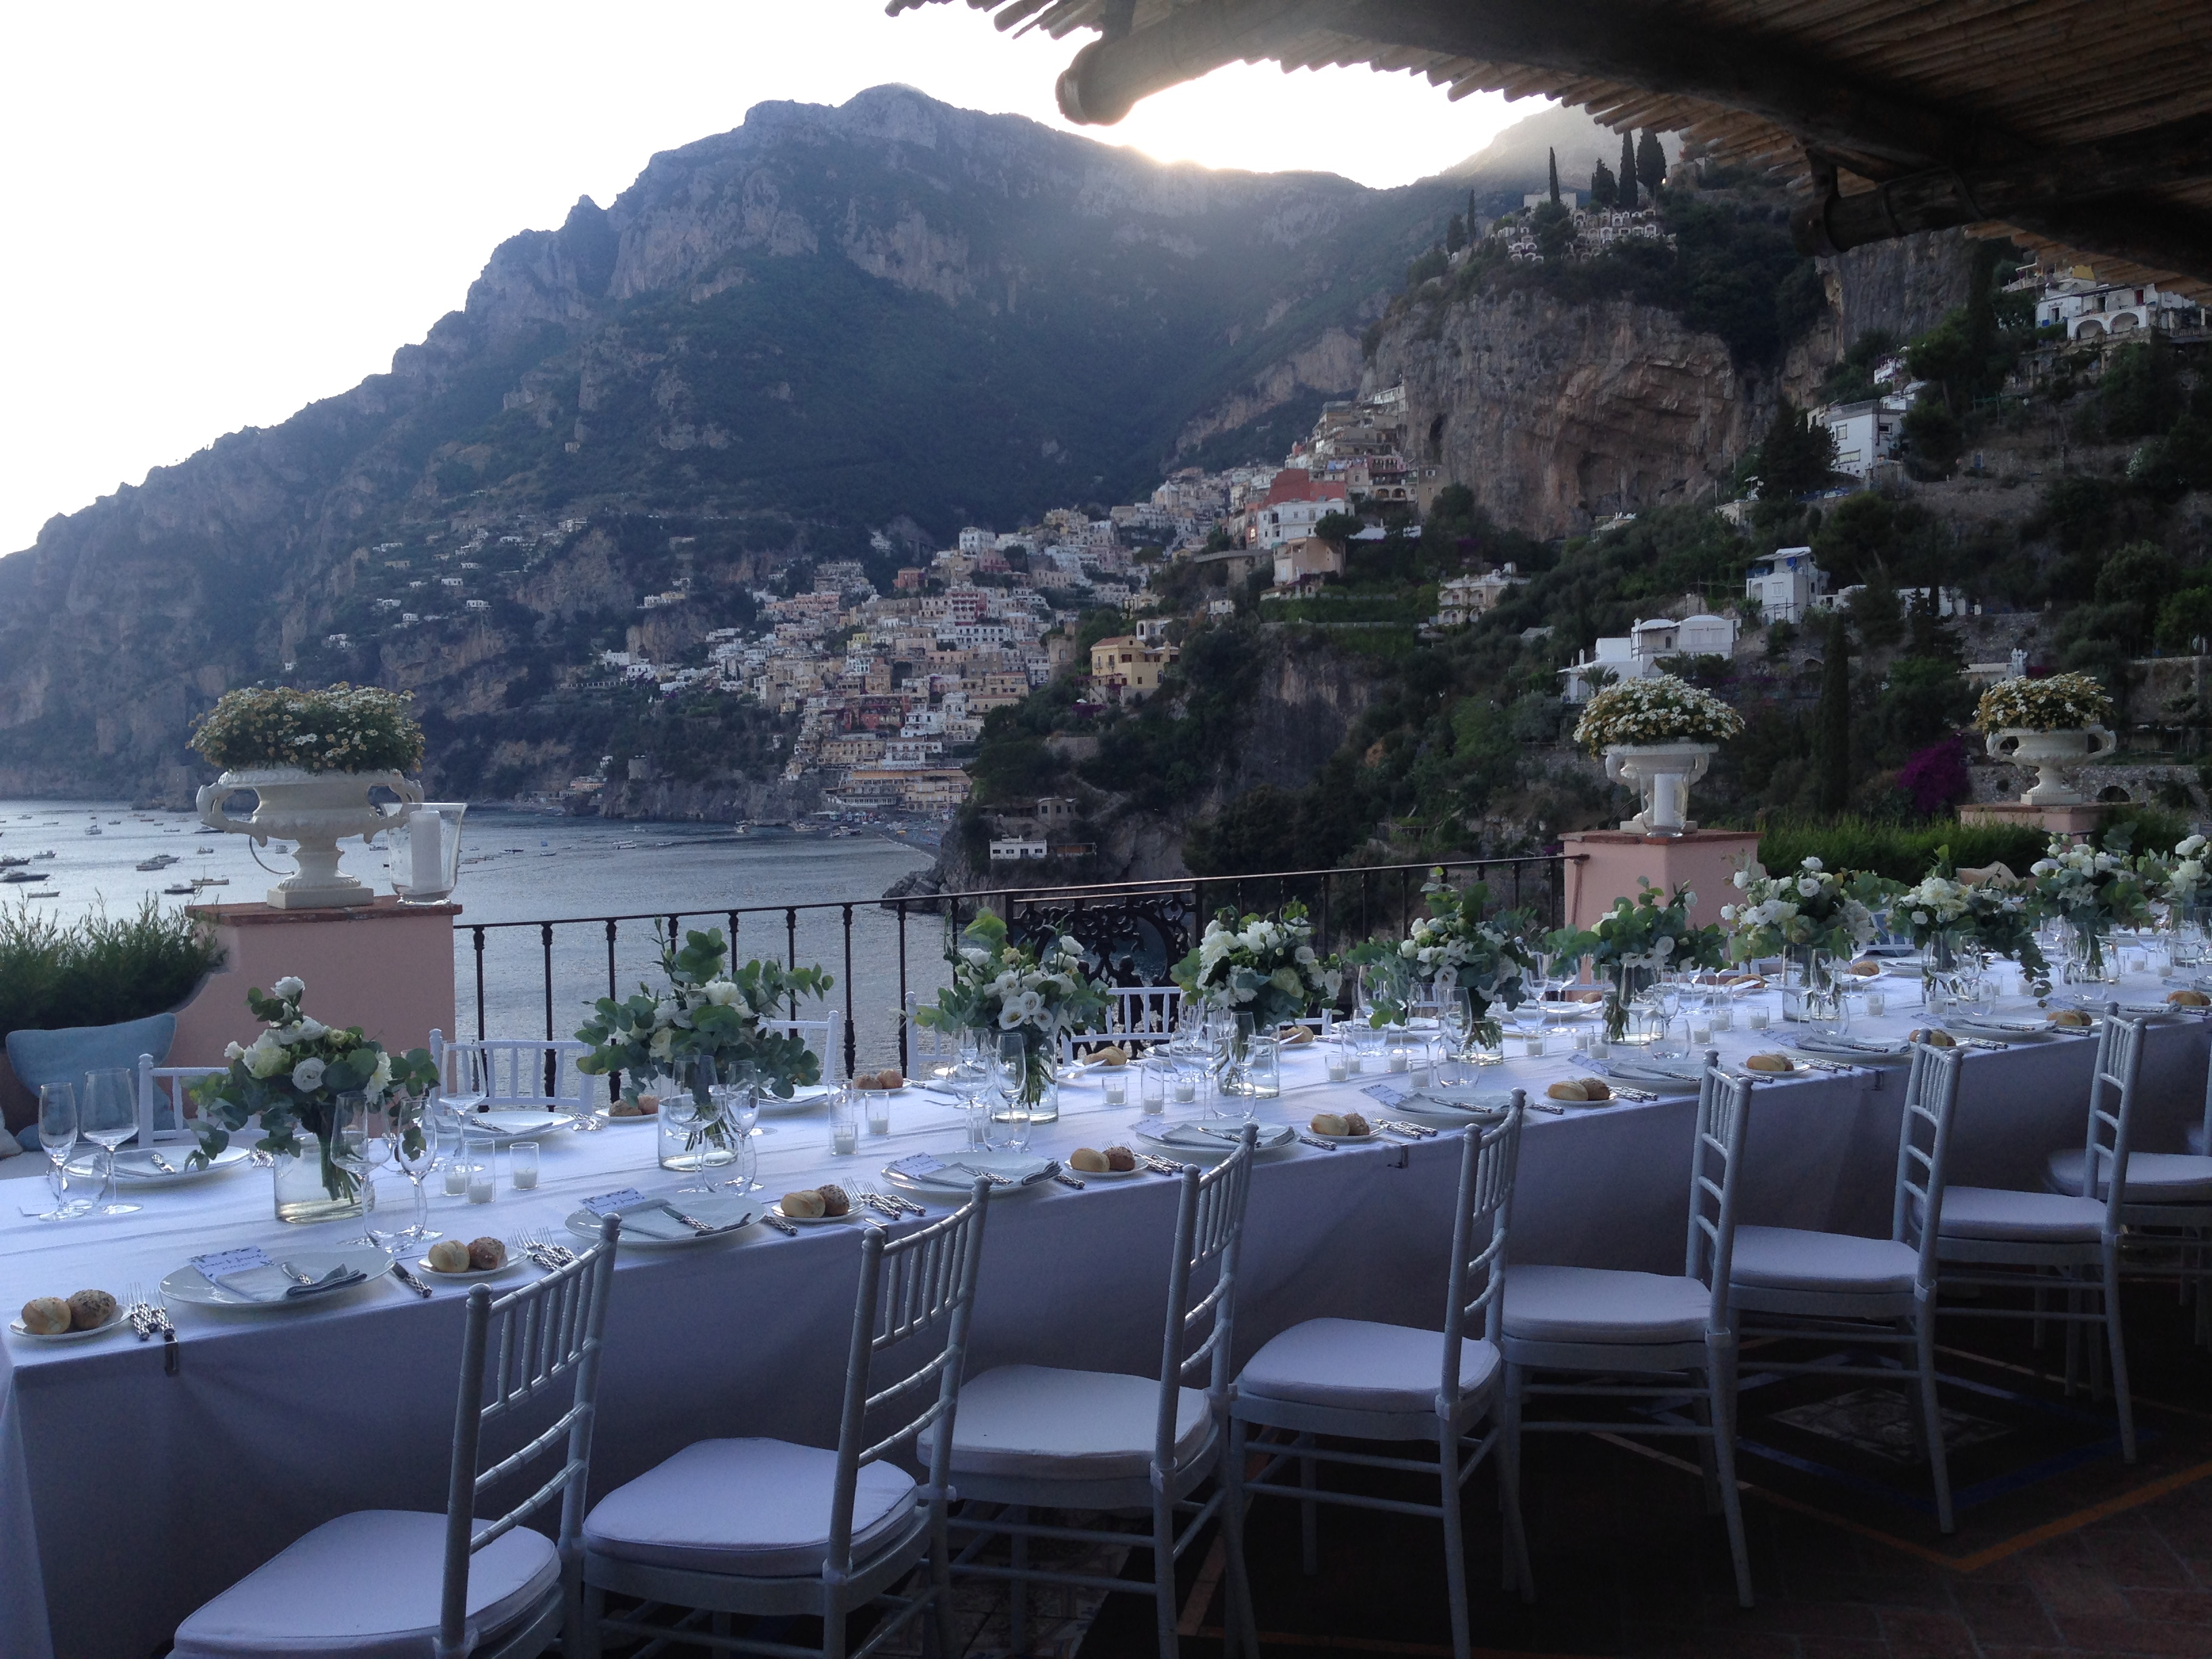 http://www.weddingamalfi.com/wp-content/uploads/Laura-and-Jarrod-wedding-table-decorations.jpg